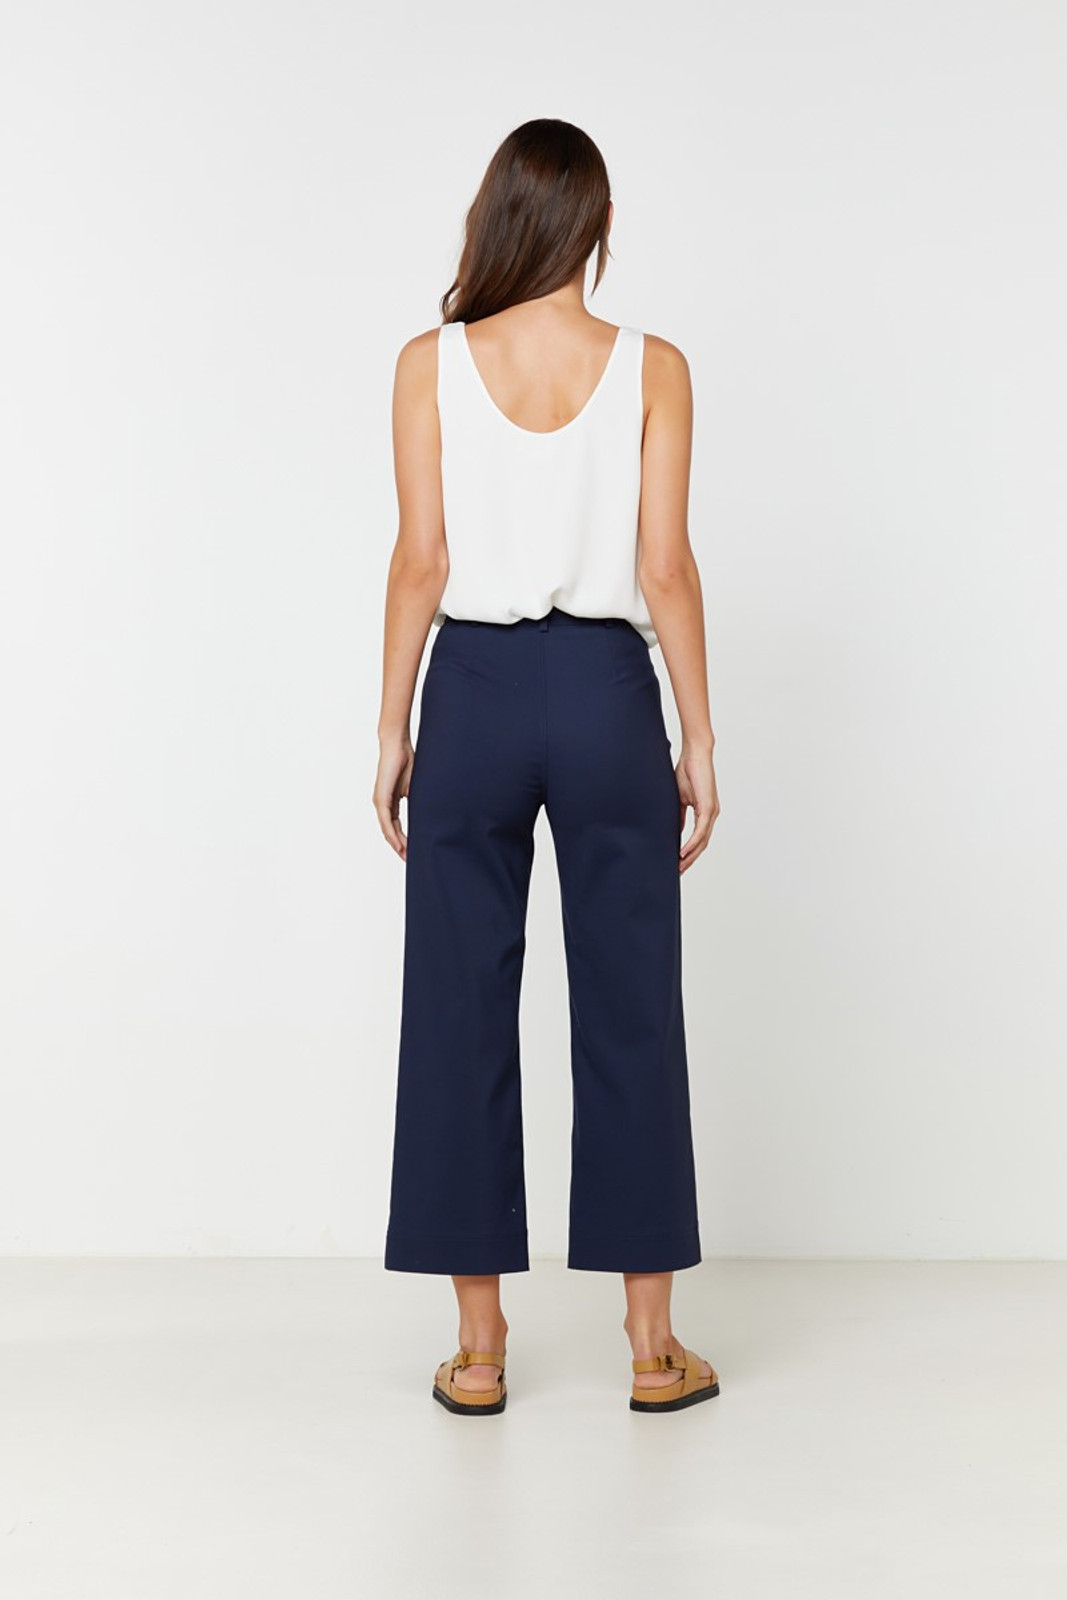 Elka Collective Ingrid Pant Navy  6